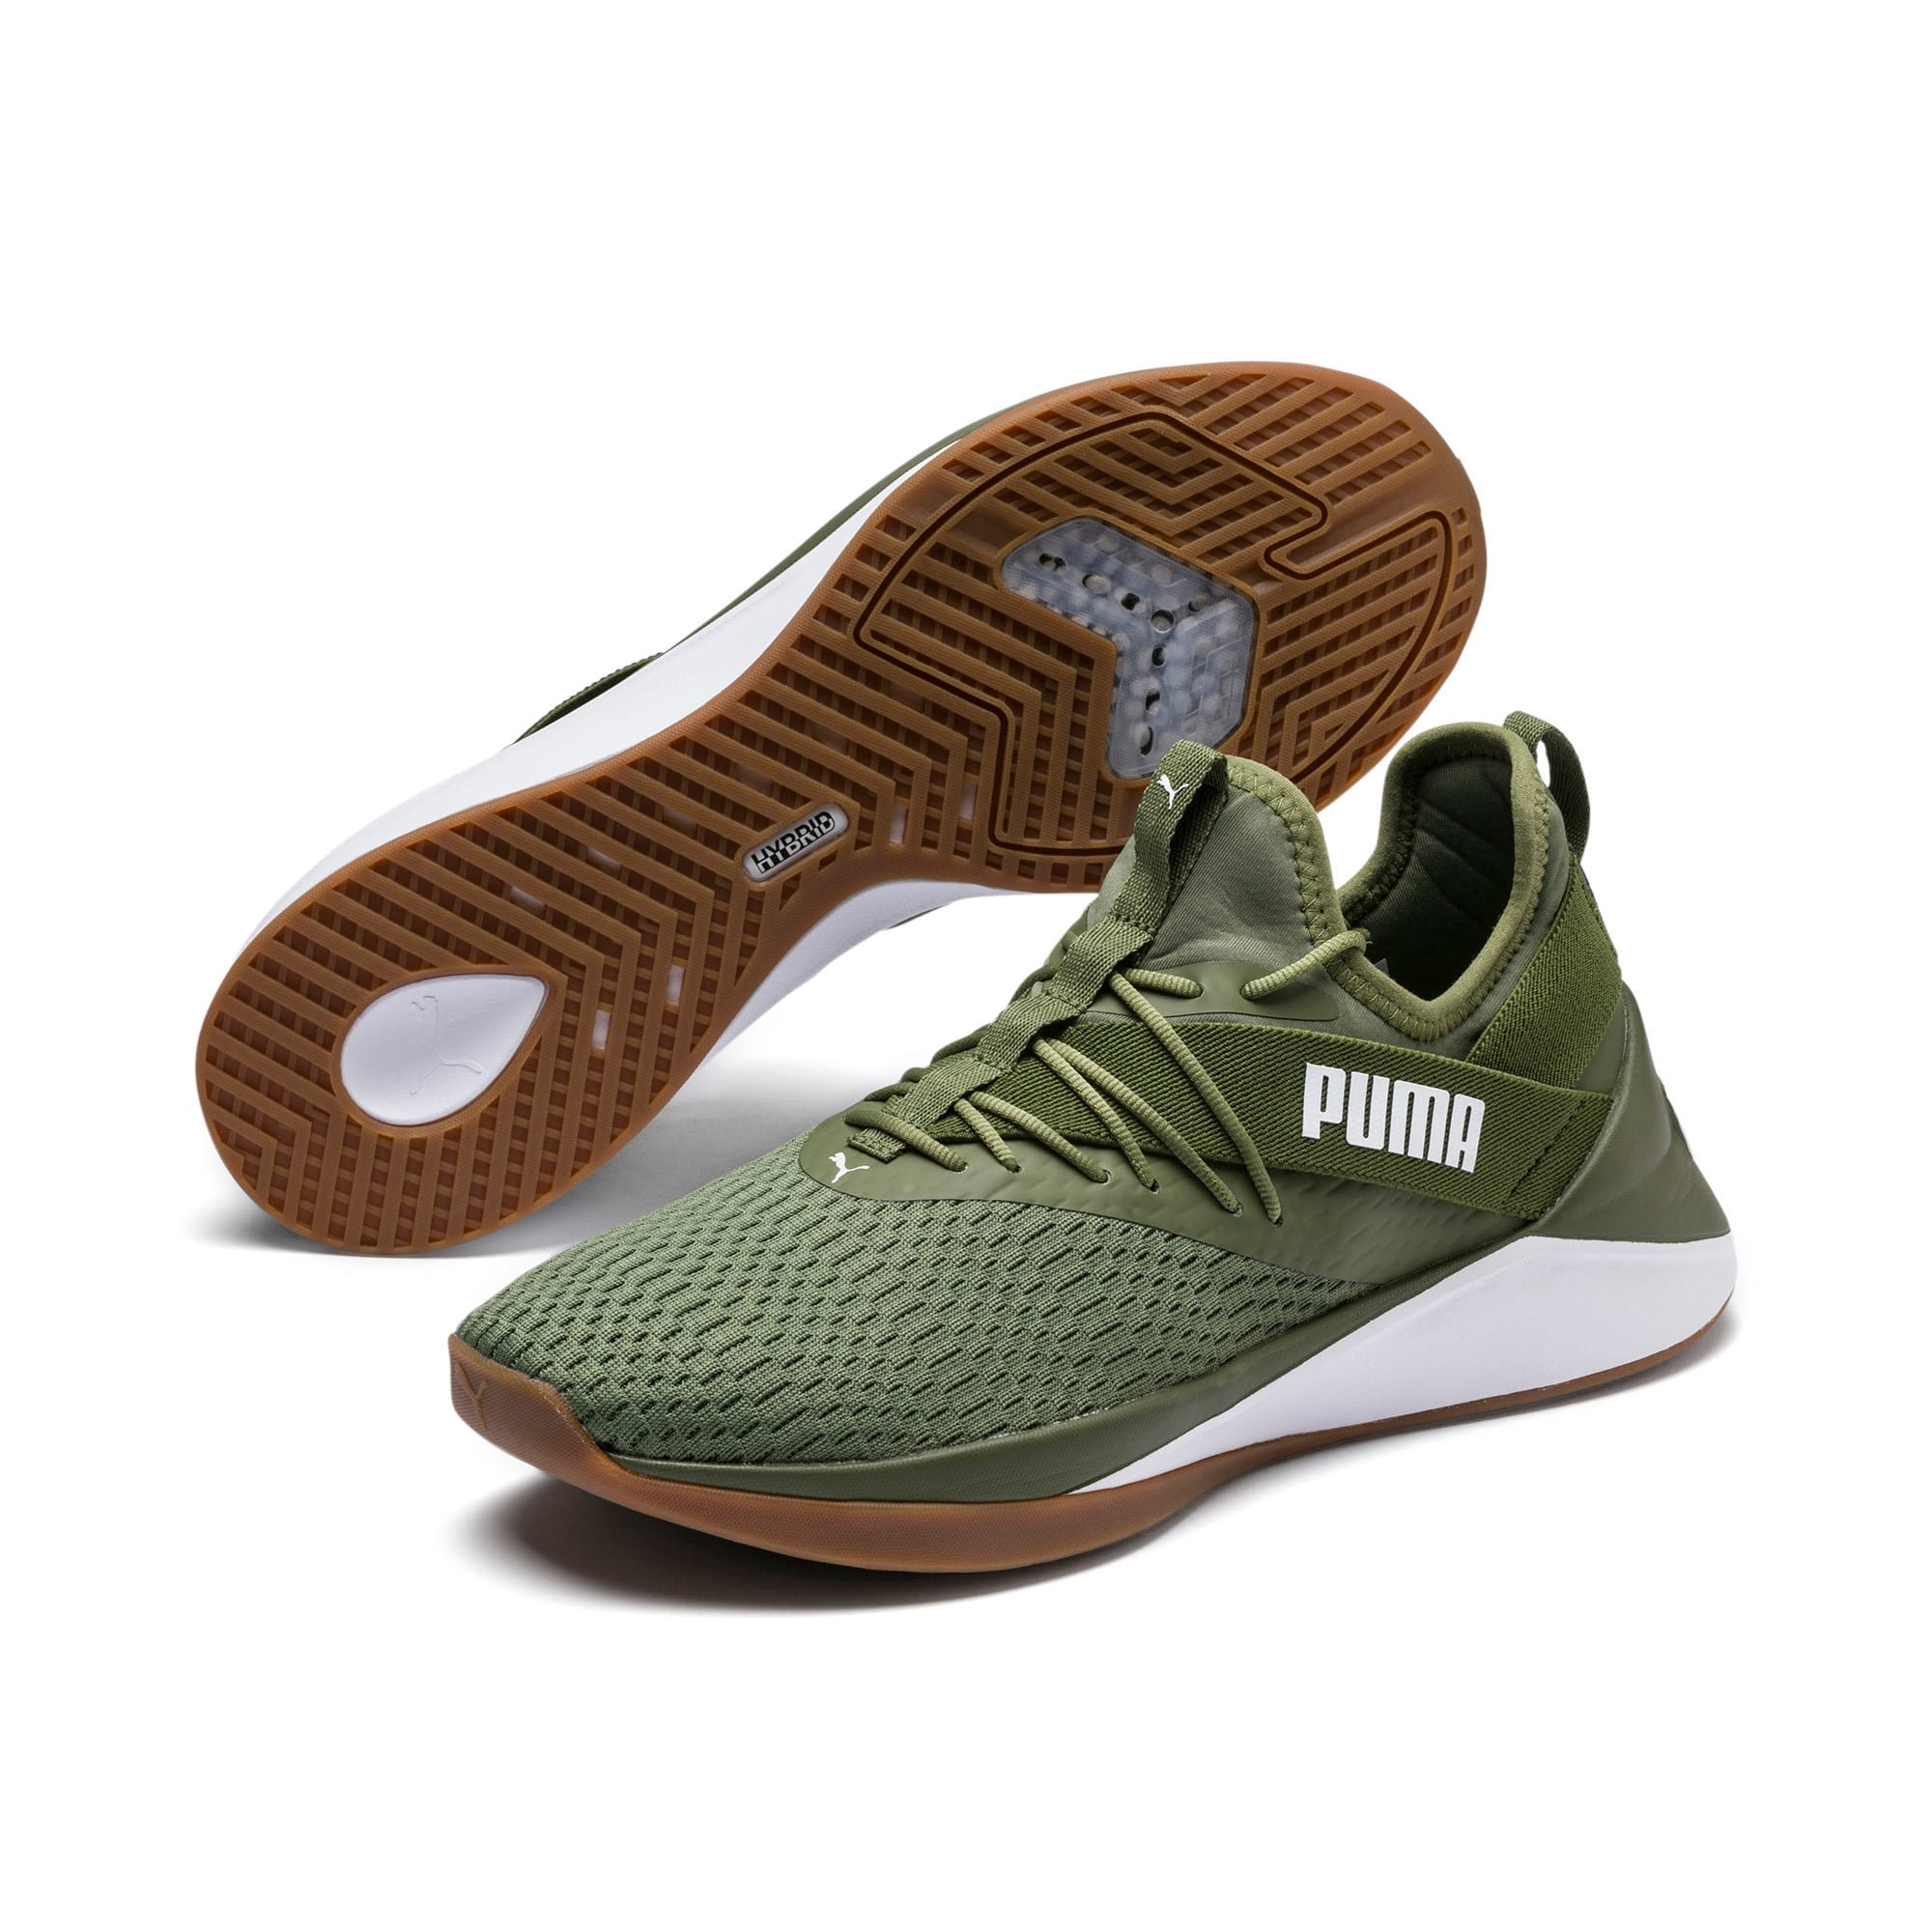 Thumbnail 2 of Jaab XT Summer Herren Sneaker, Olivine-Puma White, medium